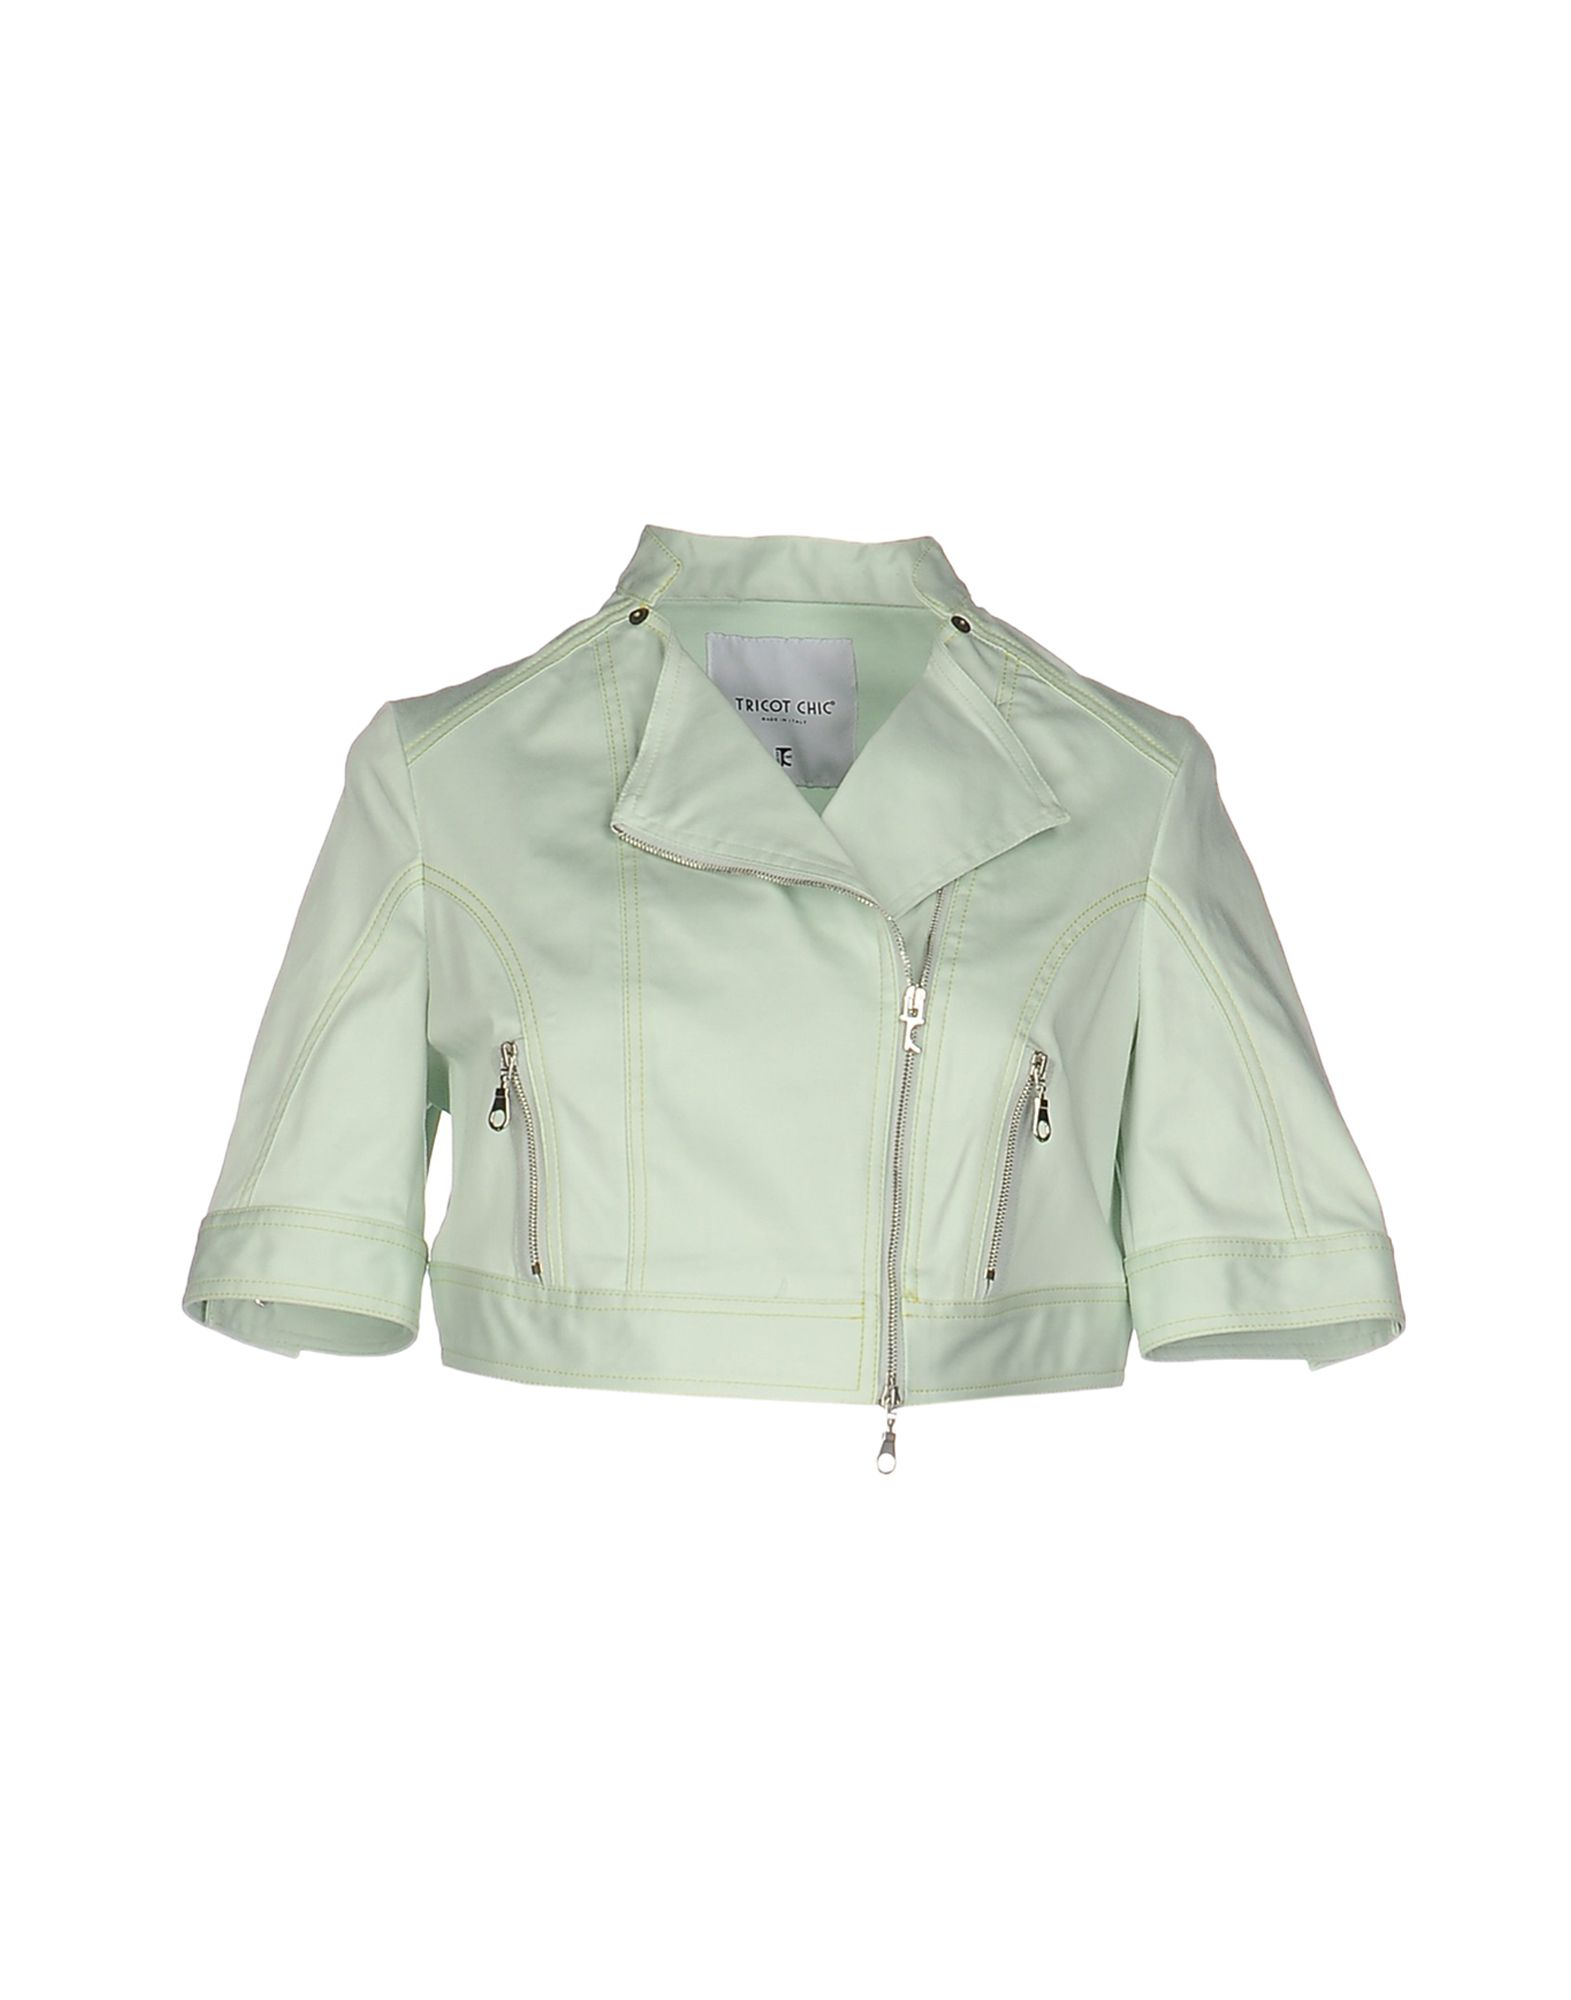 tricot chic female tricot chic jackets